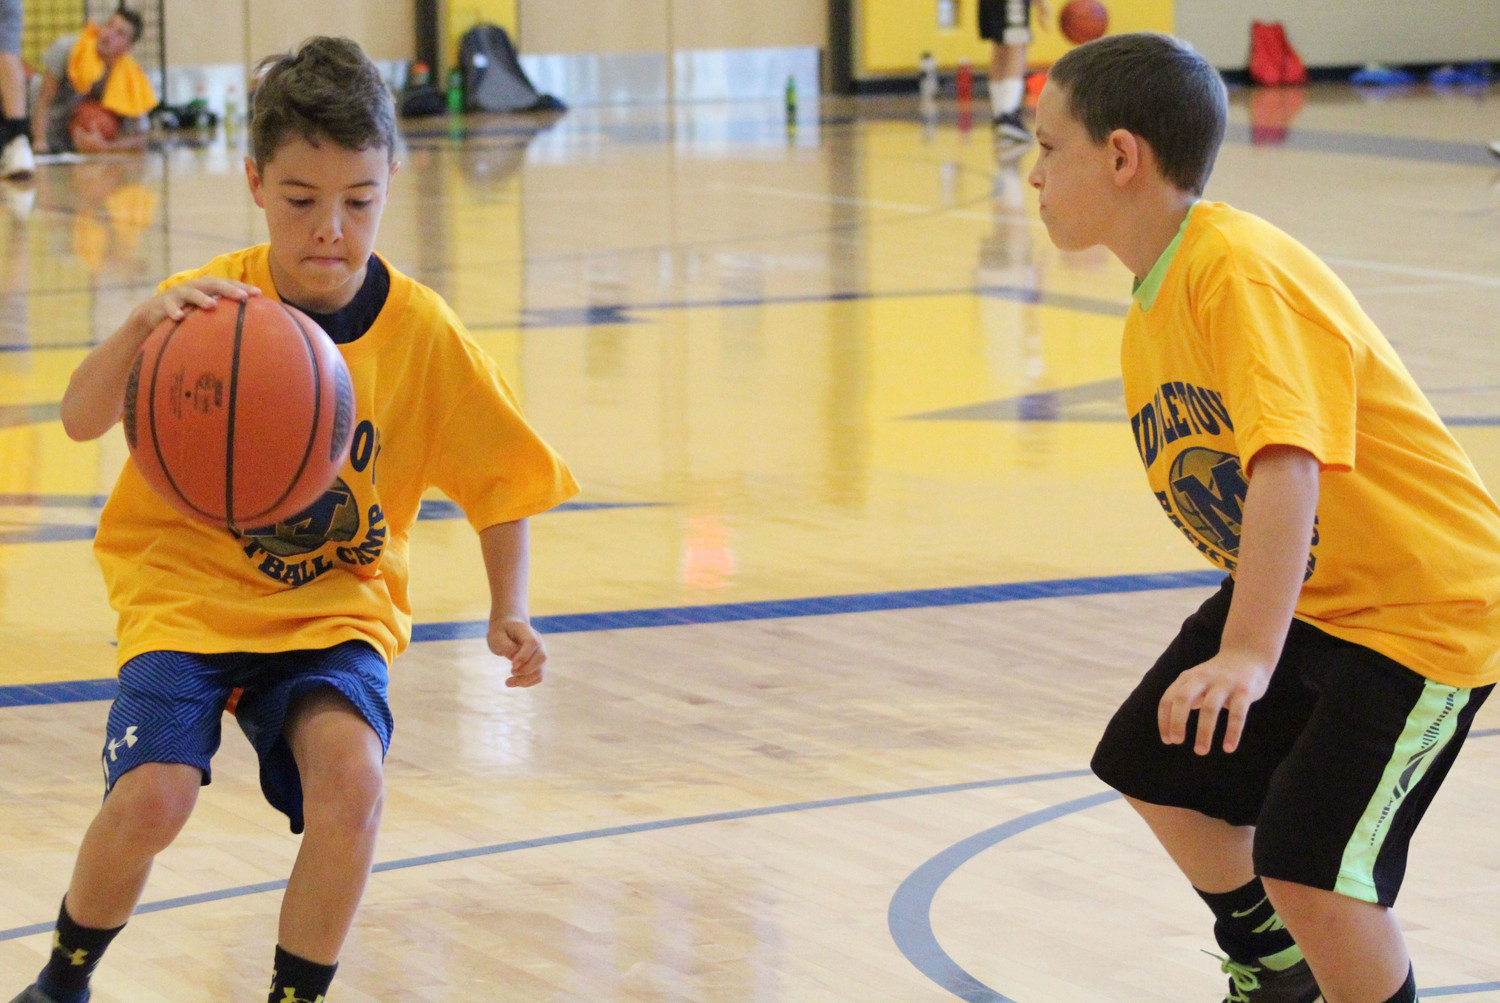 Cian Solliday makes a break against Josh Stains during basketball camp on July 12.